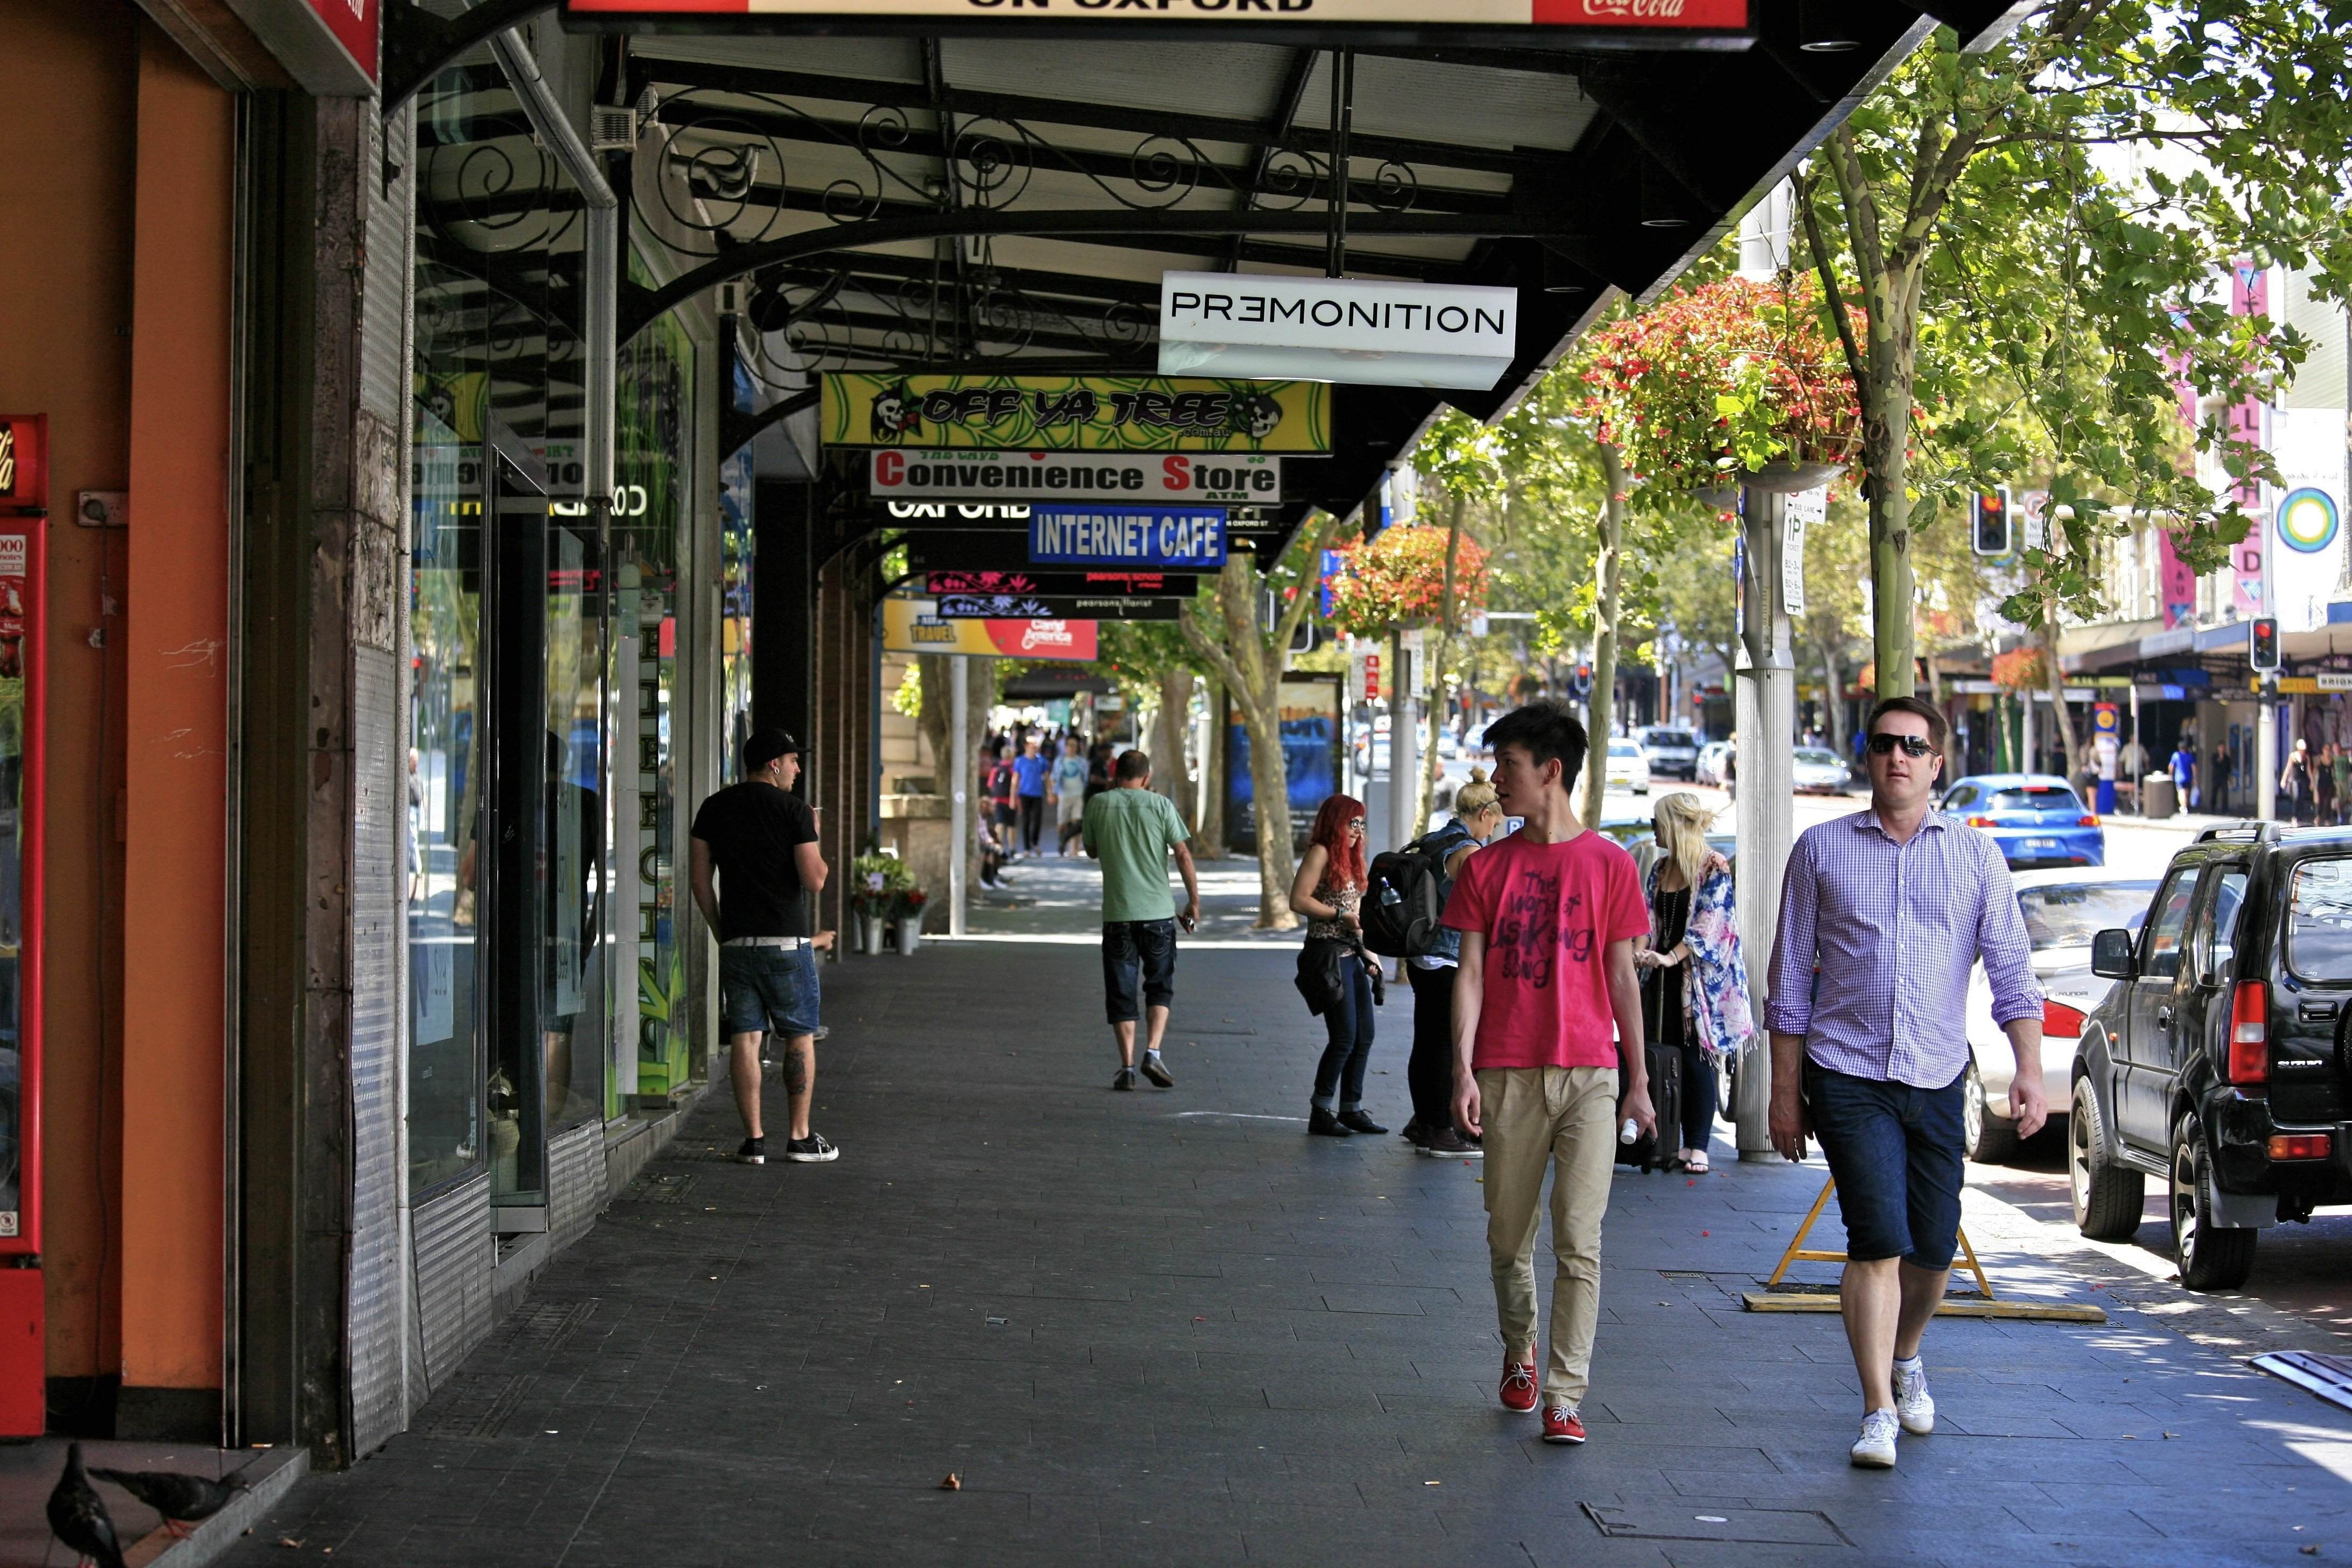 Taylor Square News Agency falls victim to lock outs